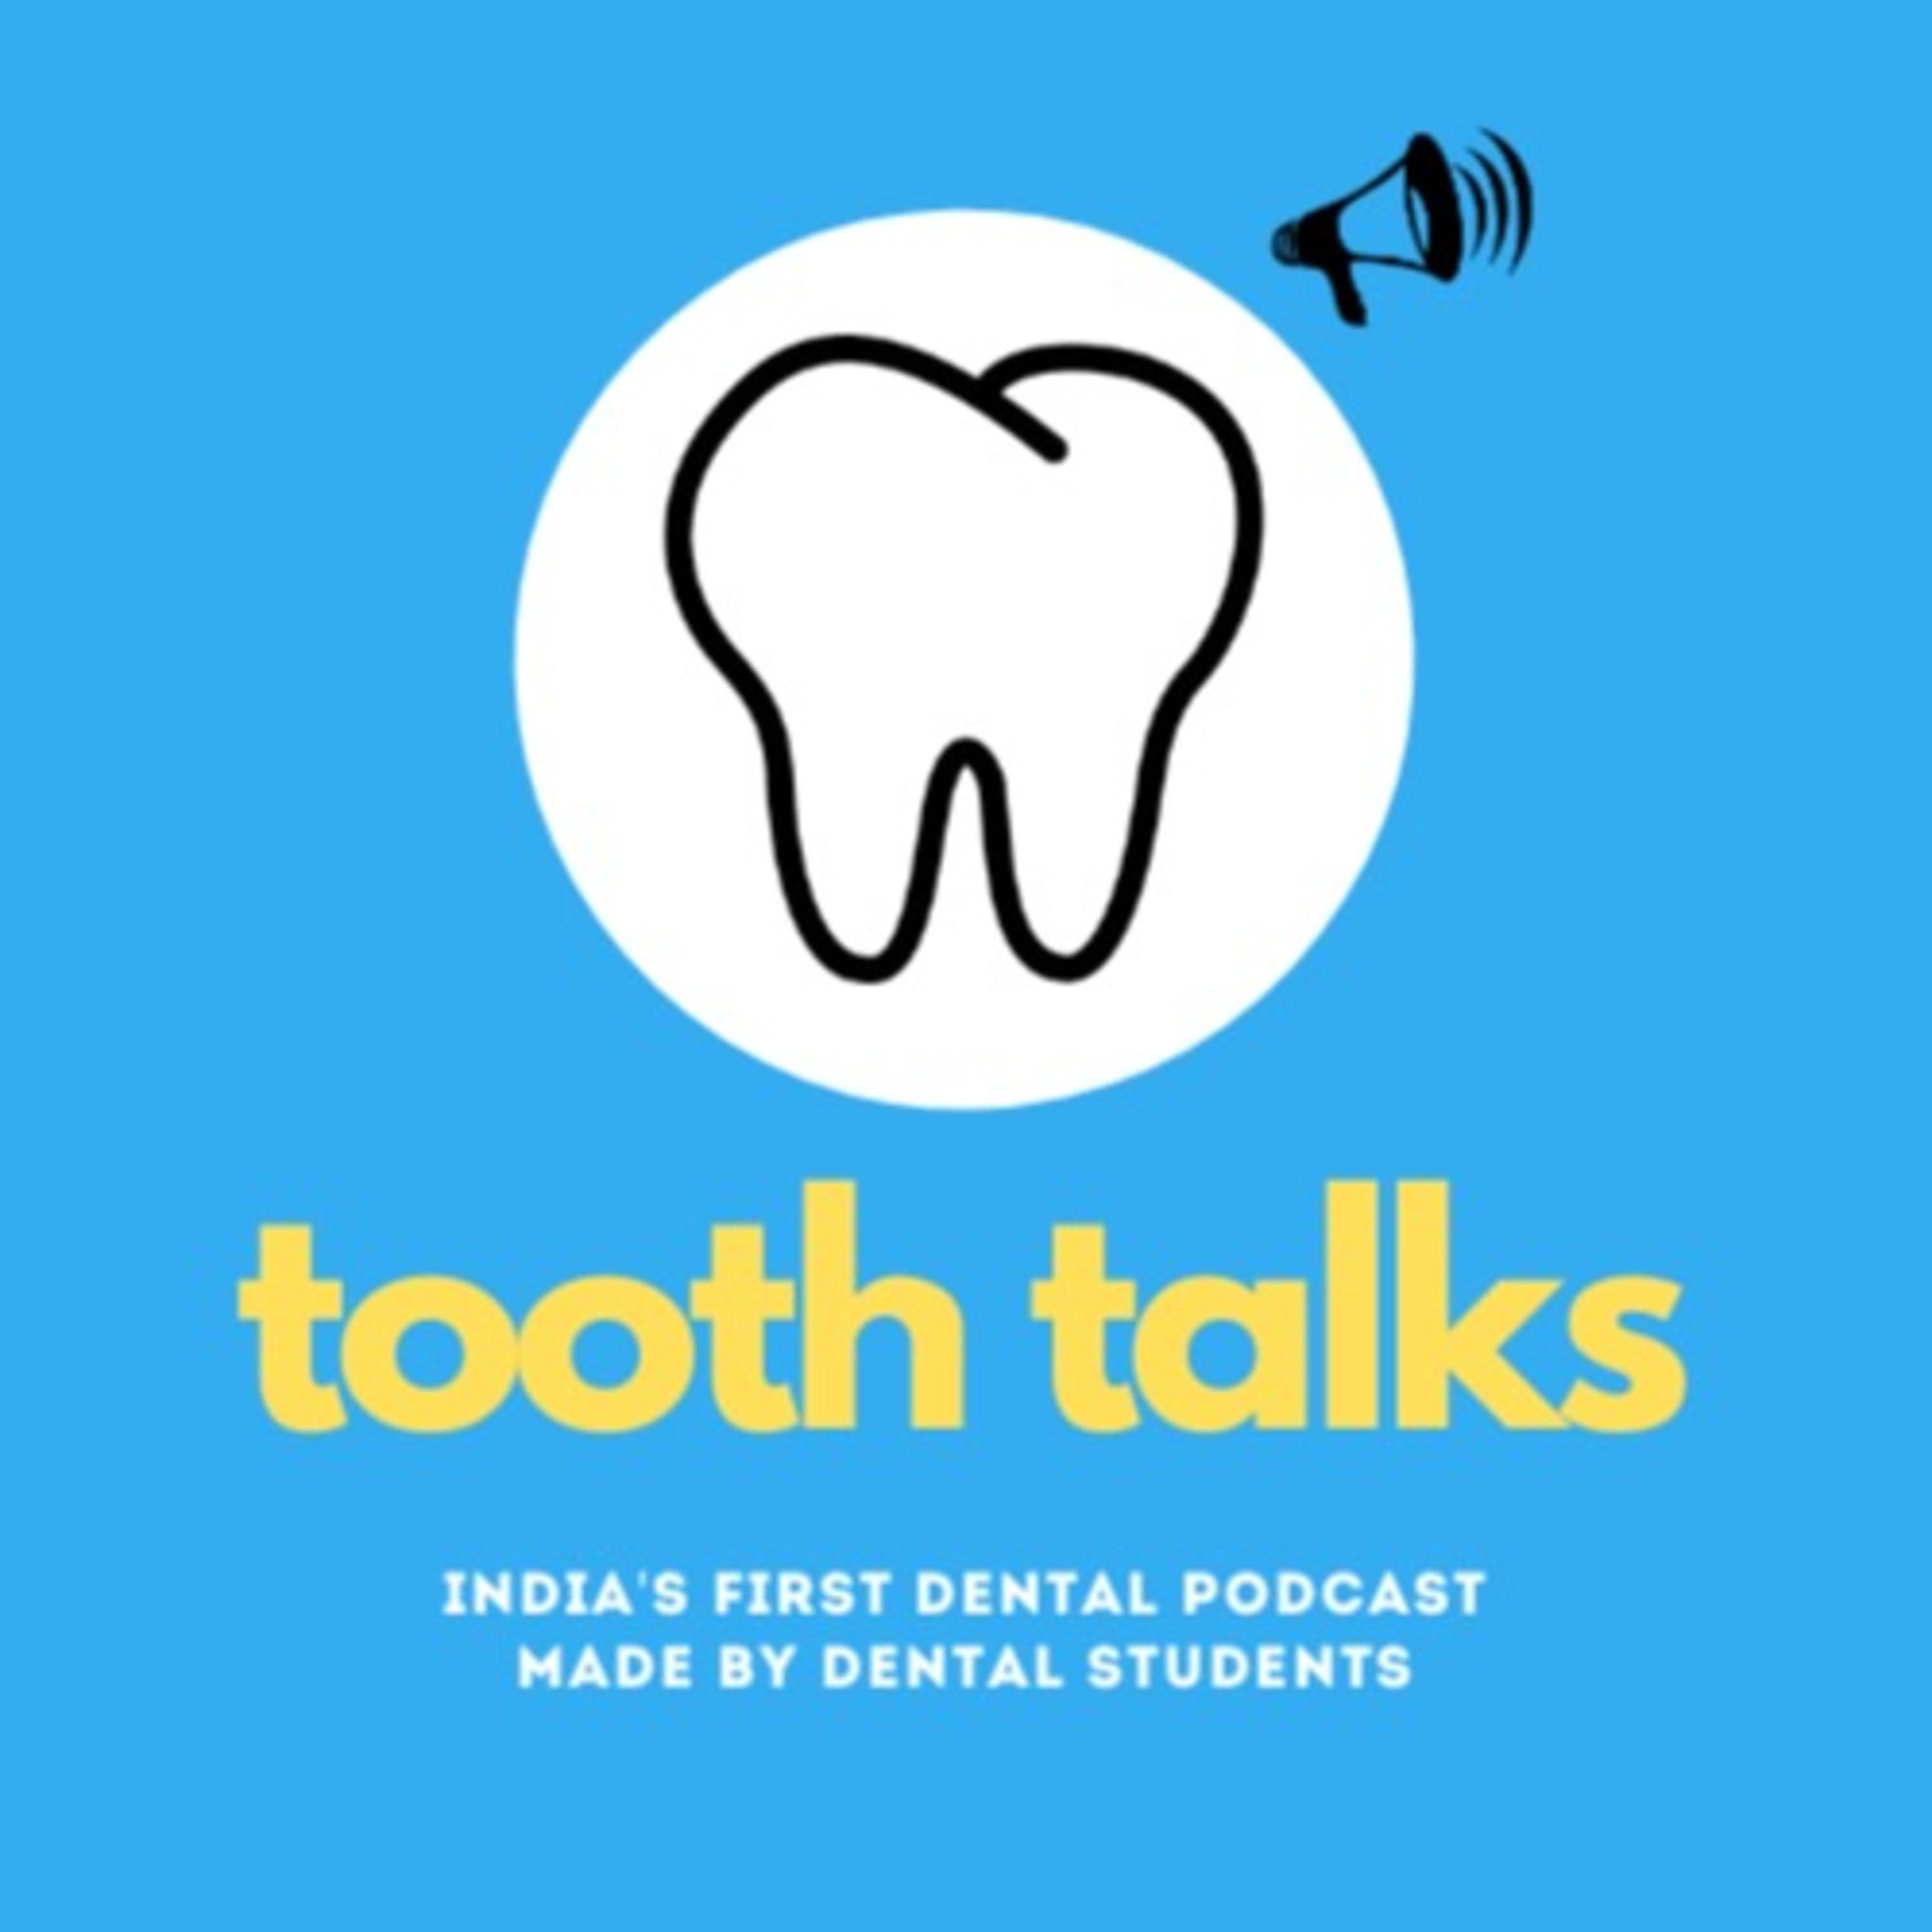 Tooth Talks - India's First Dental Podcast!